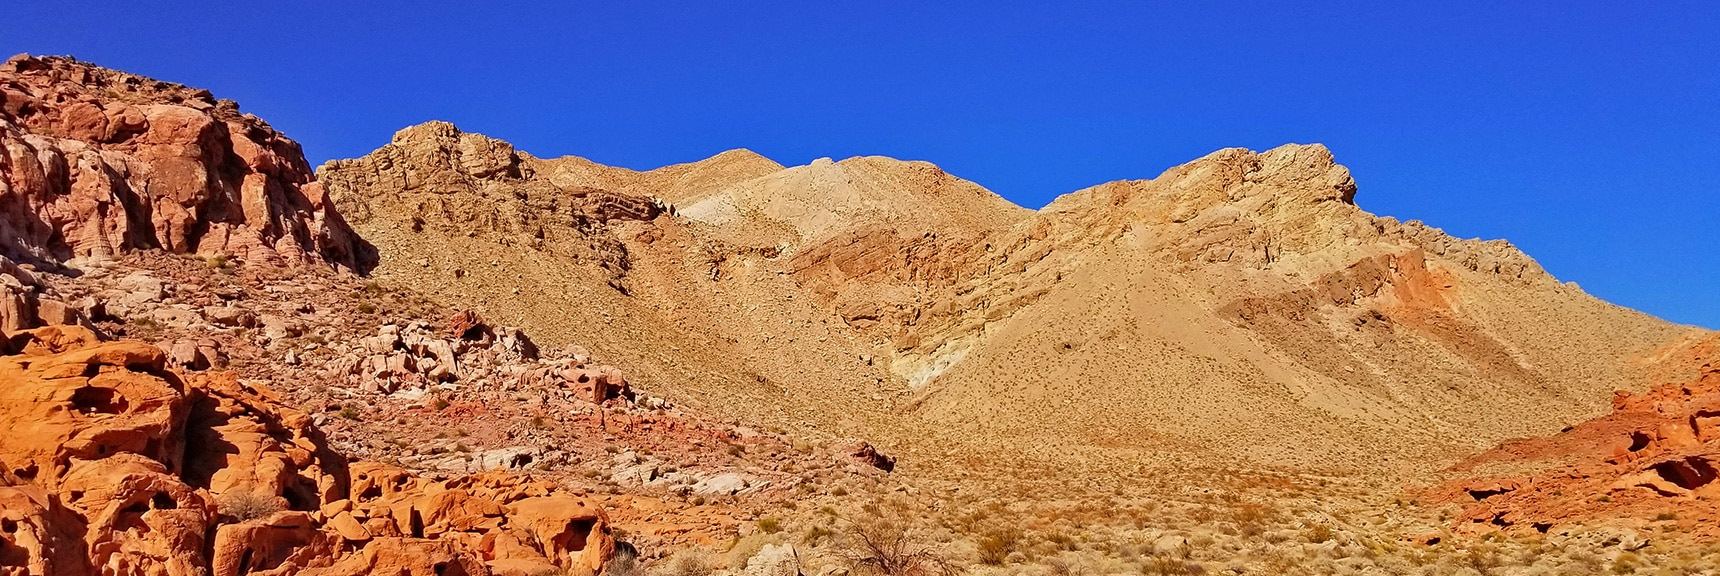 Northern End of the Bowl of Fire: Muddy Mountains, Possible Entrance to Anniversary Narrows Slot Canyon | Bowl of Fire, Lake Mead National Recreation Area, Nevada